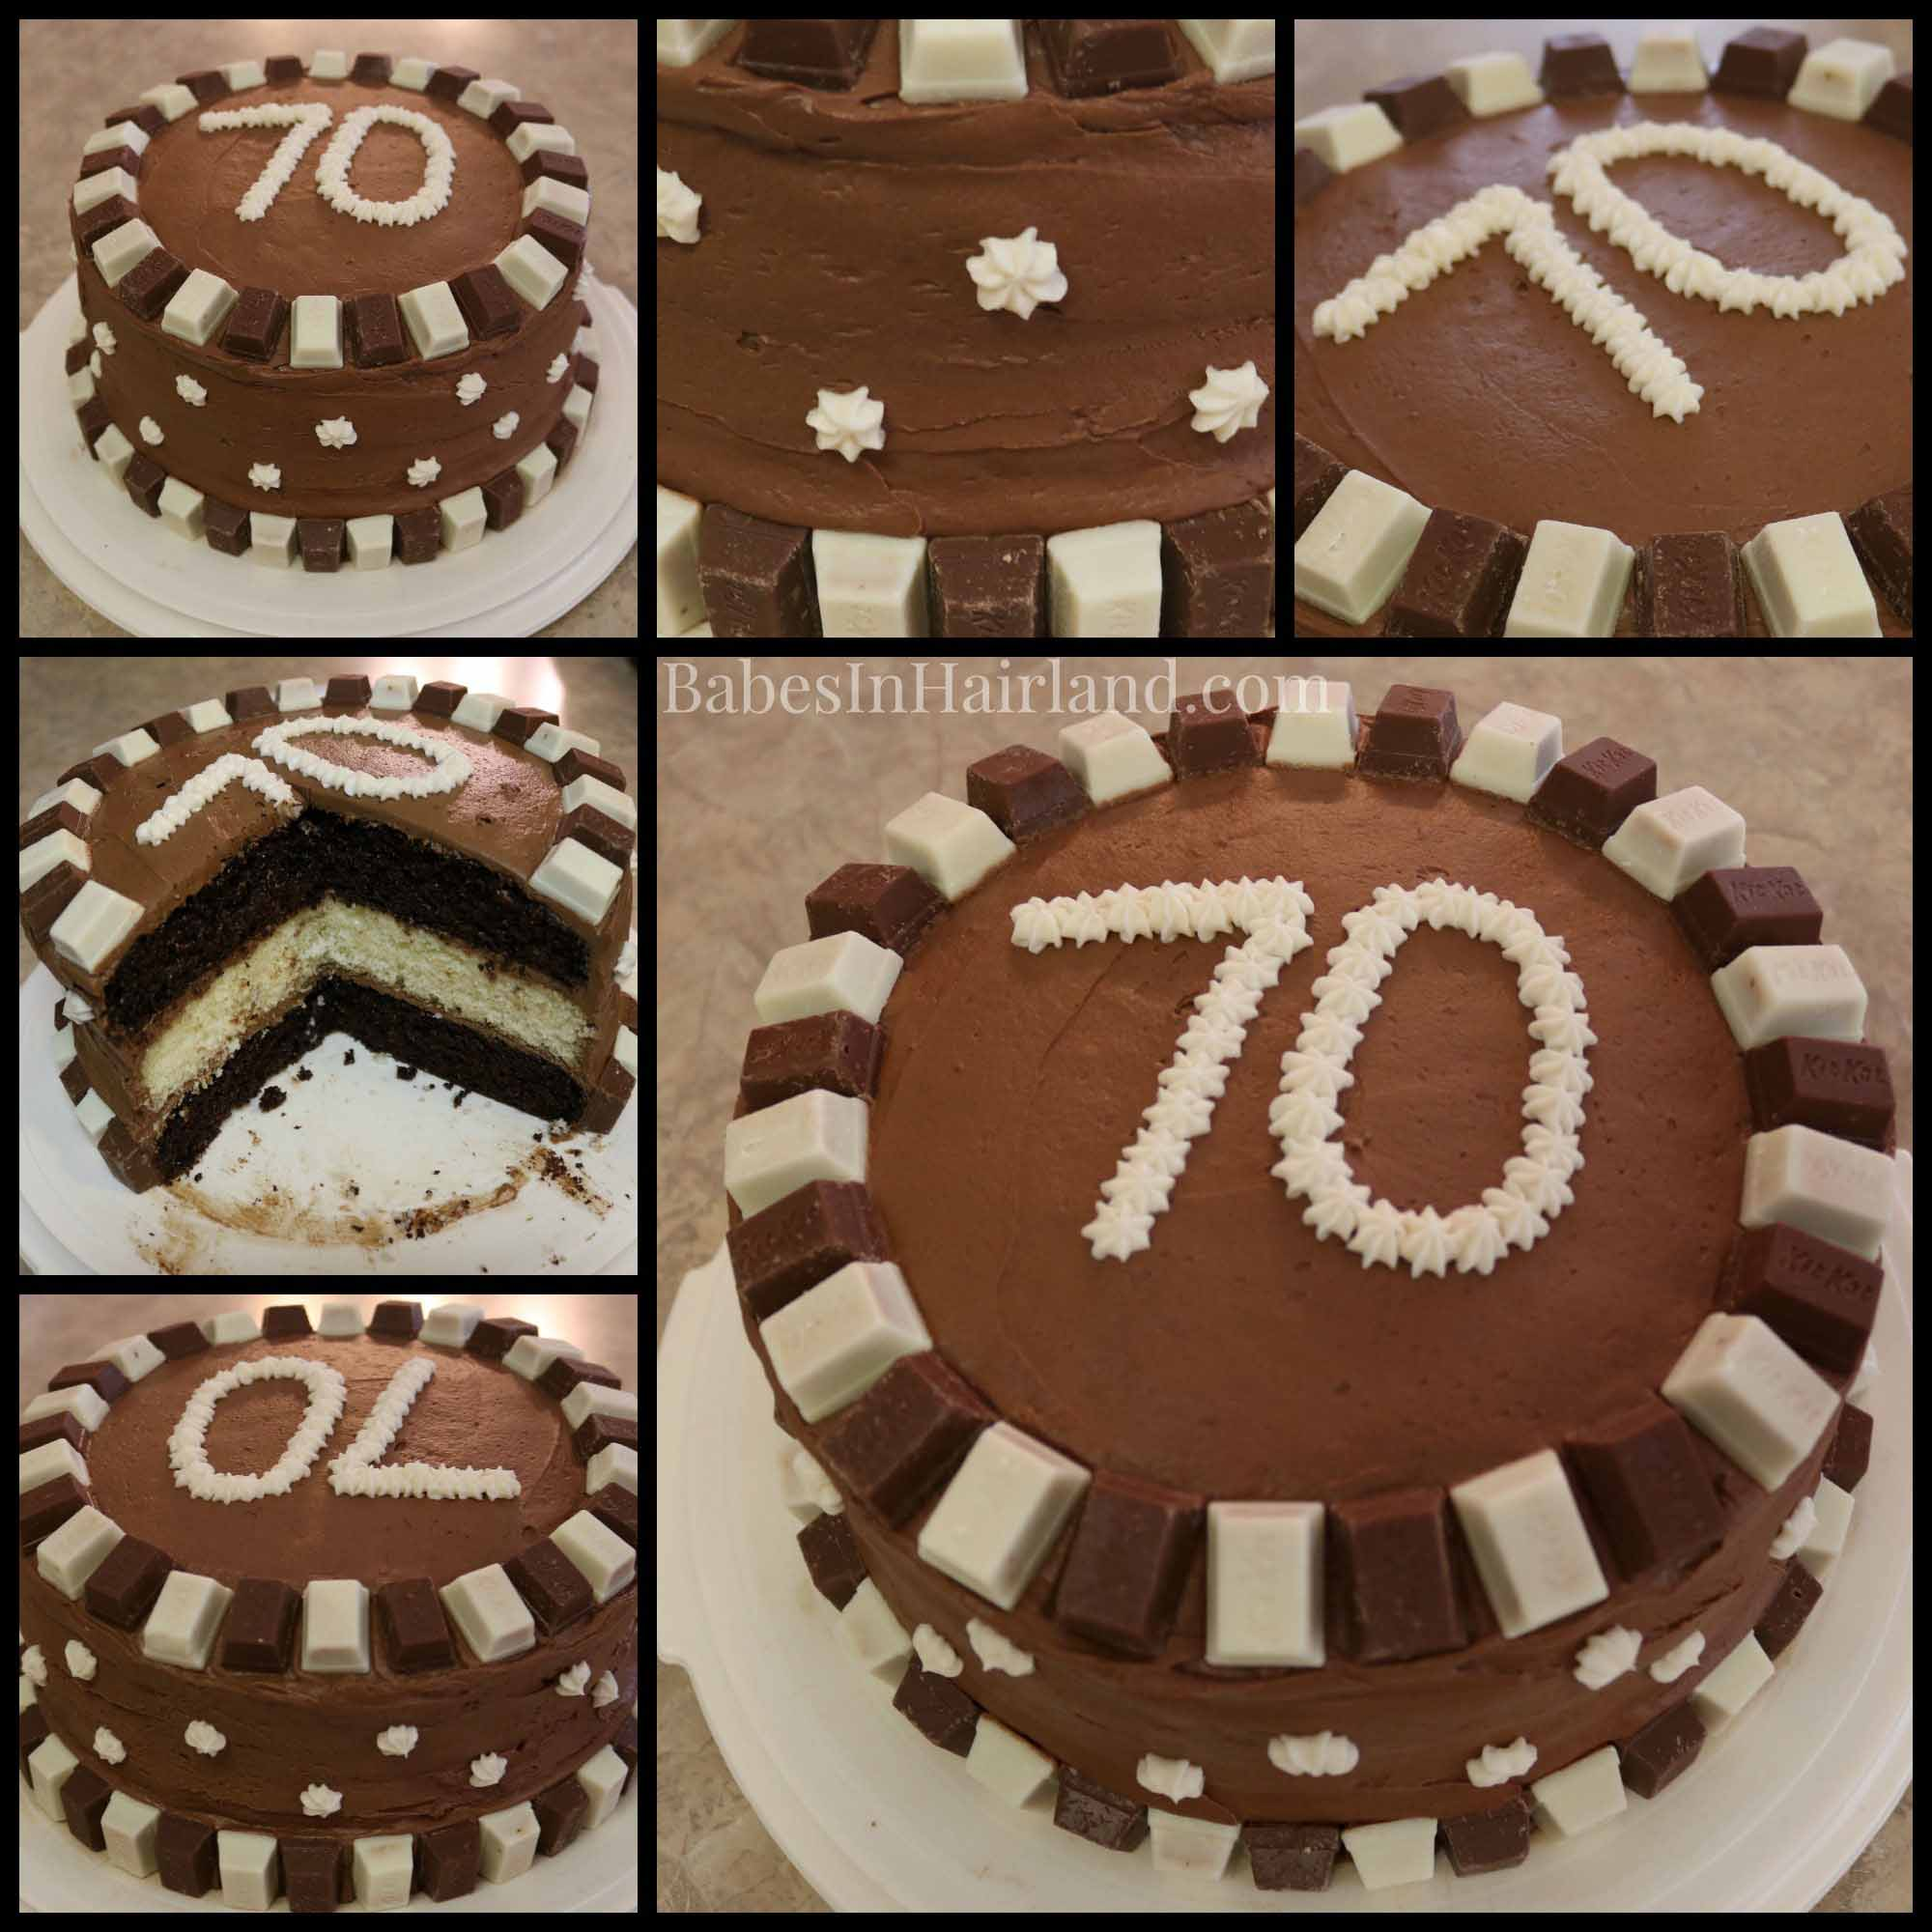 Birthday Cakes Anyone Can Make Even if Your Not a Professional